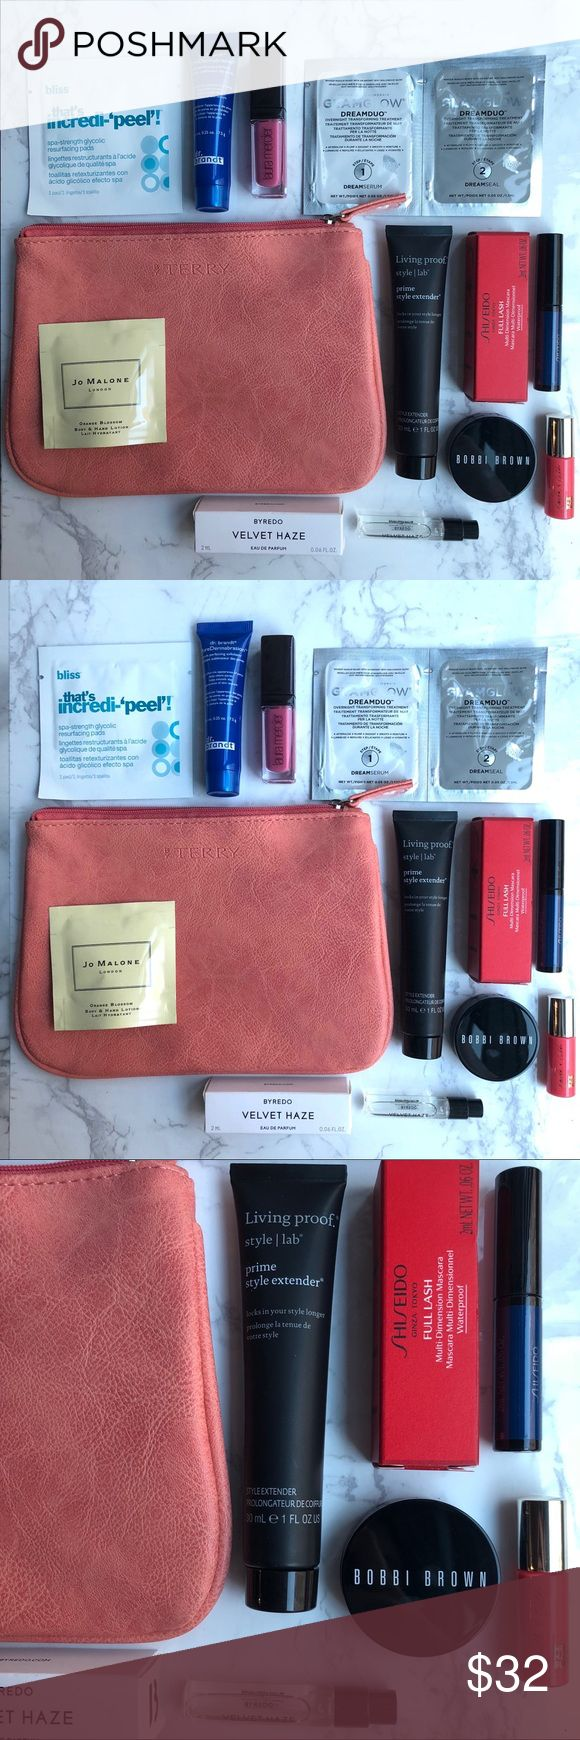 NWT 16 pc Makeup/Skincare Product Bundle Includes byTerry cosmetics bag, Laura Mercier lipgloss, Dr. Brandt PoreDermabrasion, Jo Malone Orange Blossom Hand/Body Lotion, Living Proof Prime Style Extender, Bobbi Brown Bronzer, GlamGlow DreamDuo, Byredo Velvet Haze, Shiseido Full Lash Mascara, Smith and Cult Lipgloss, Bliss That's Incredi-Peel. All brand new never used. Sephora Makeup